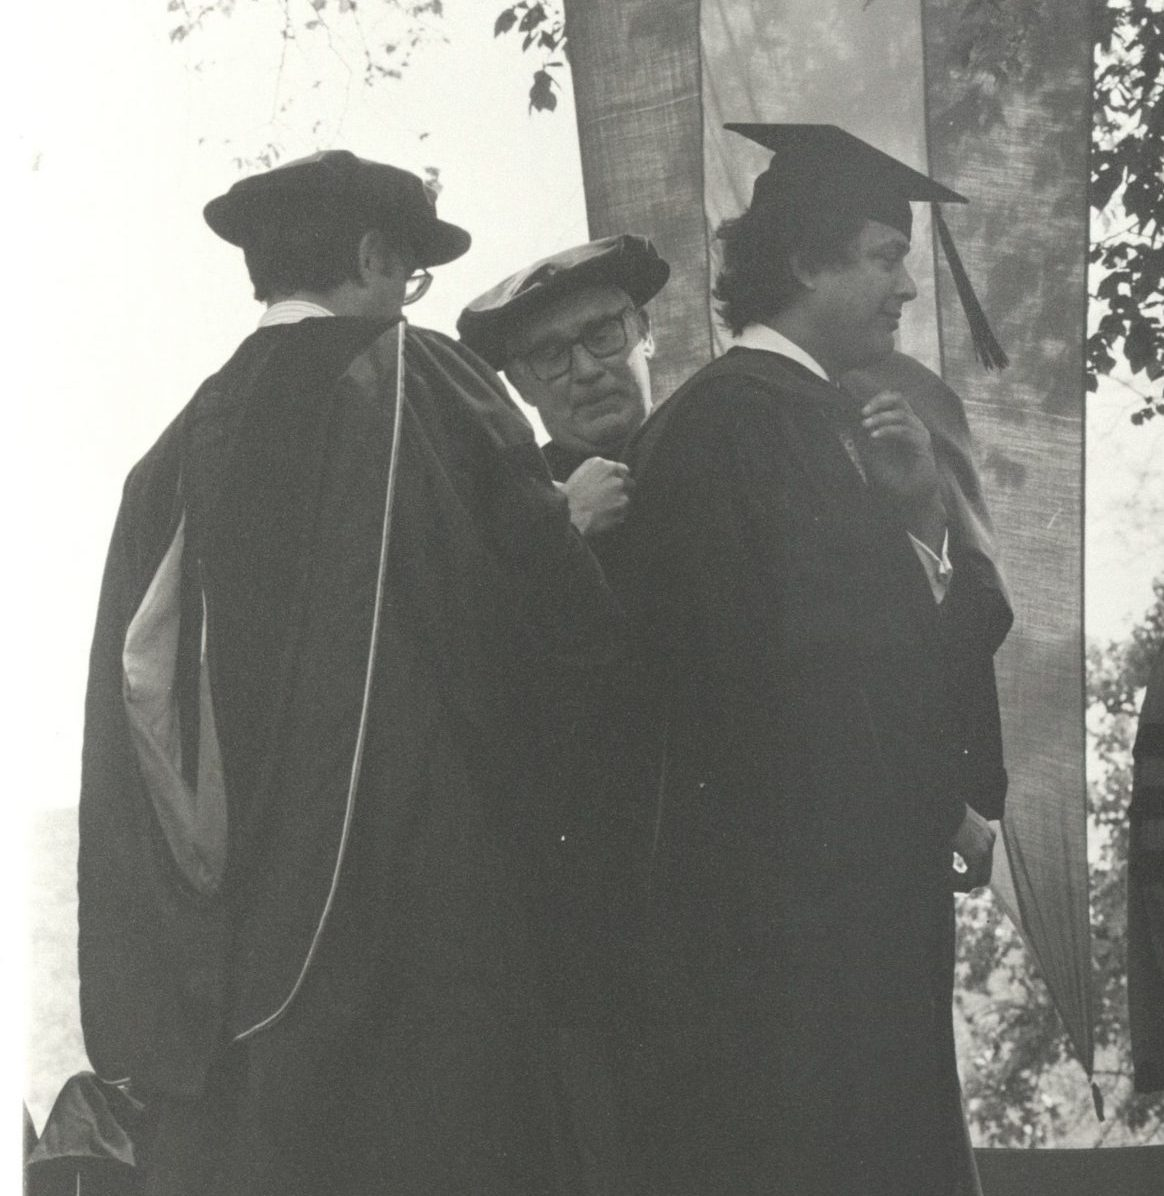 A man receives an honorary degree in an outdoor ceremony.